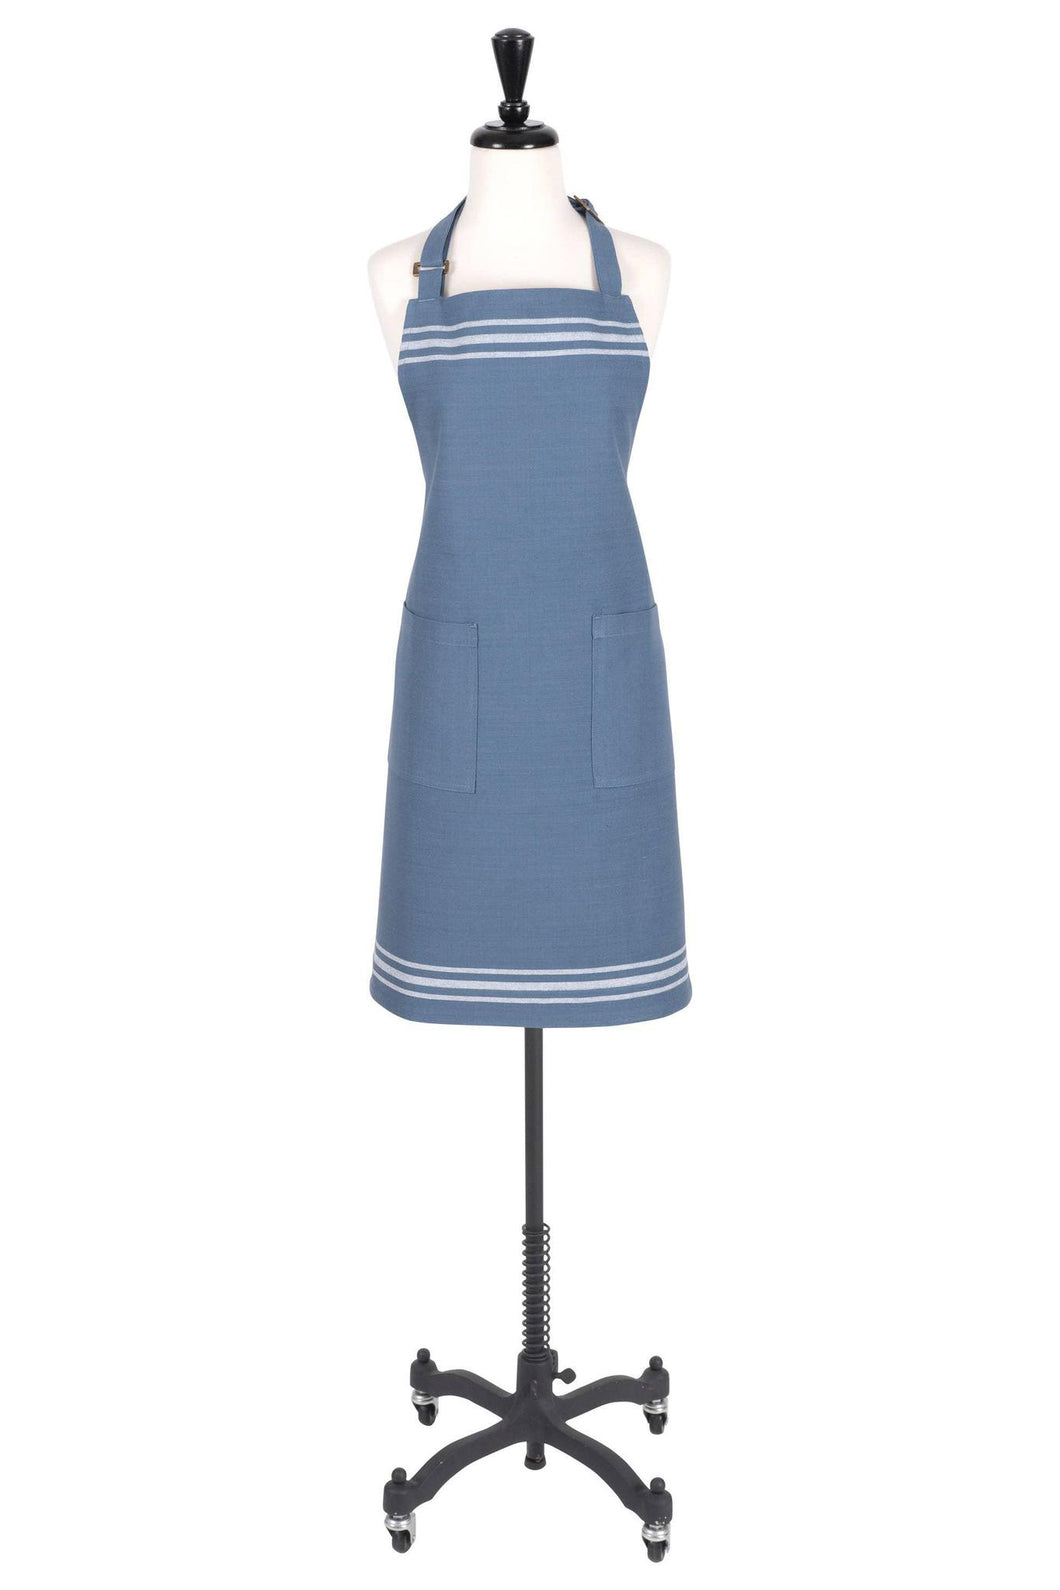 Christopher Kimball's Milk Street Apron - French Stripe -Bering Sea